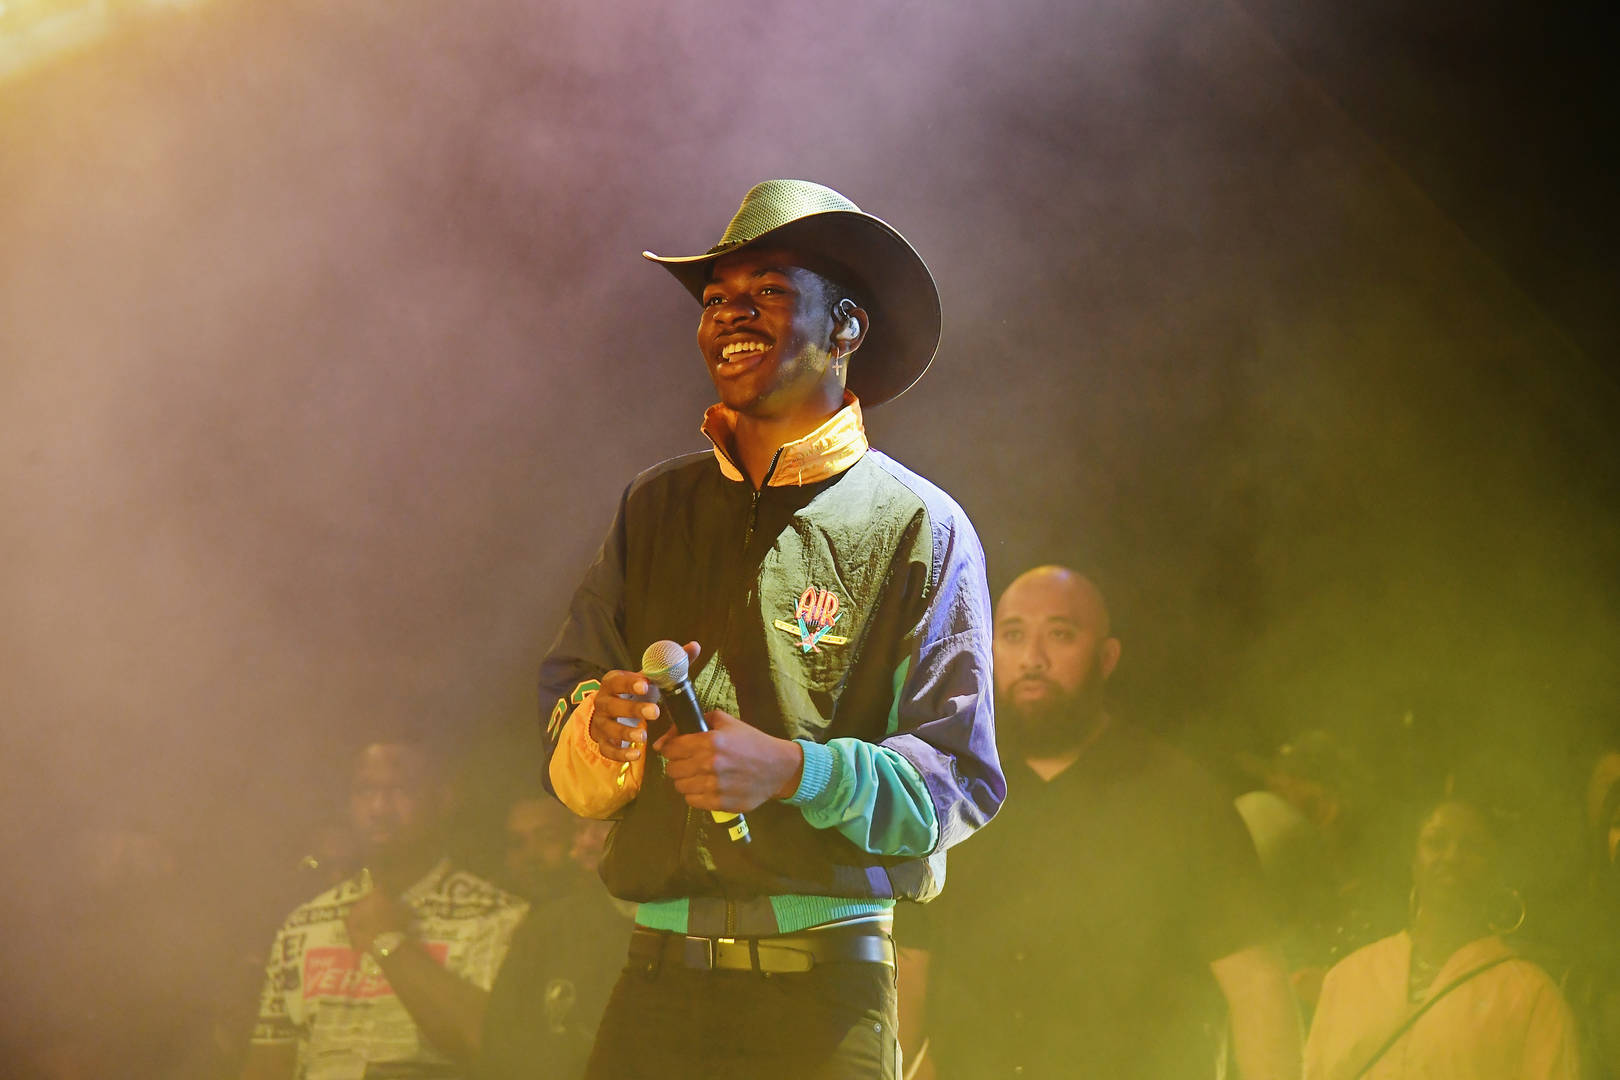 Pete Buttigieg, Miley Cyrus Congratulate Lil Nas X On Coming Out Gay